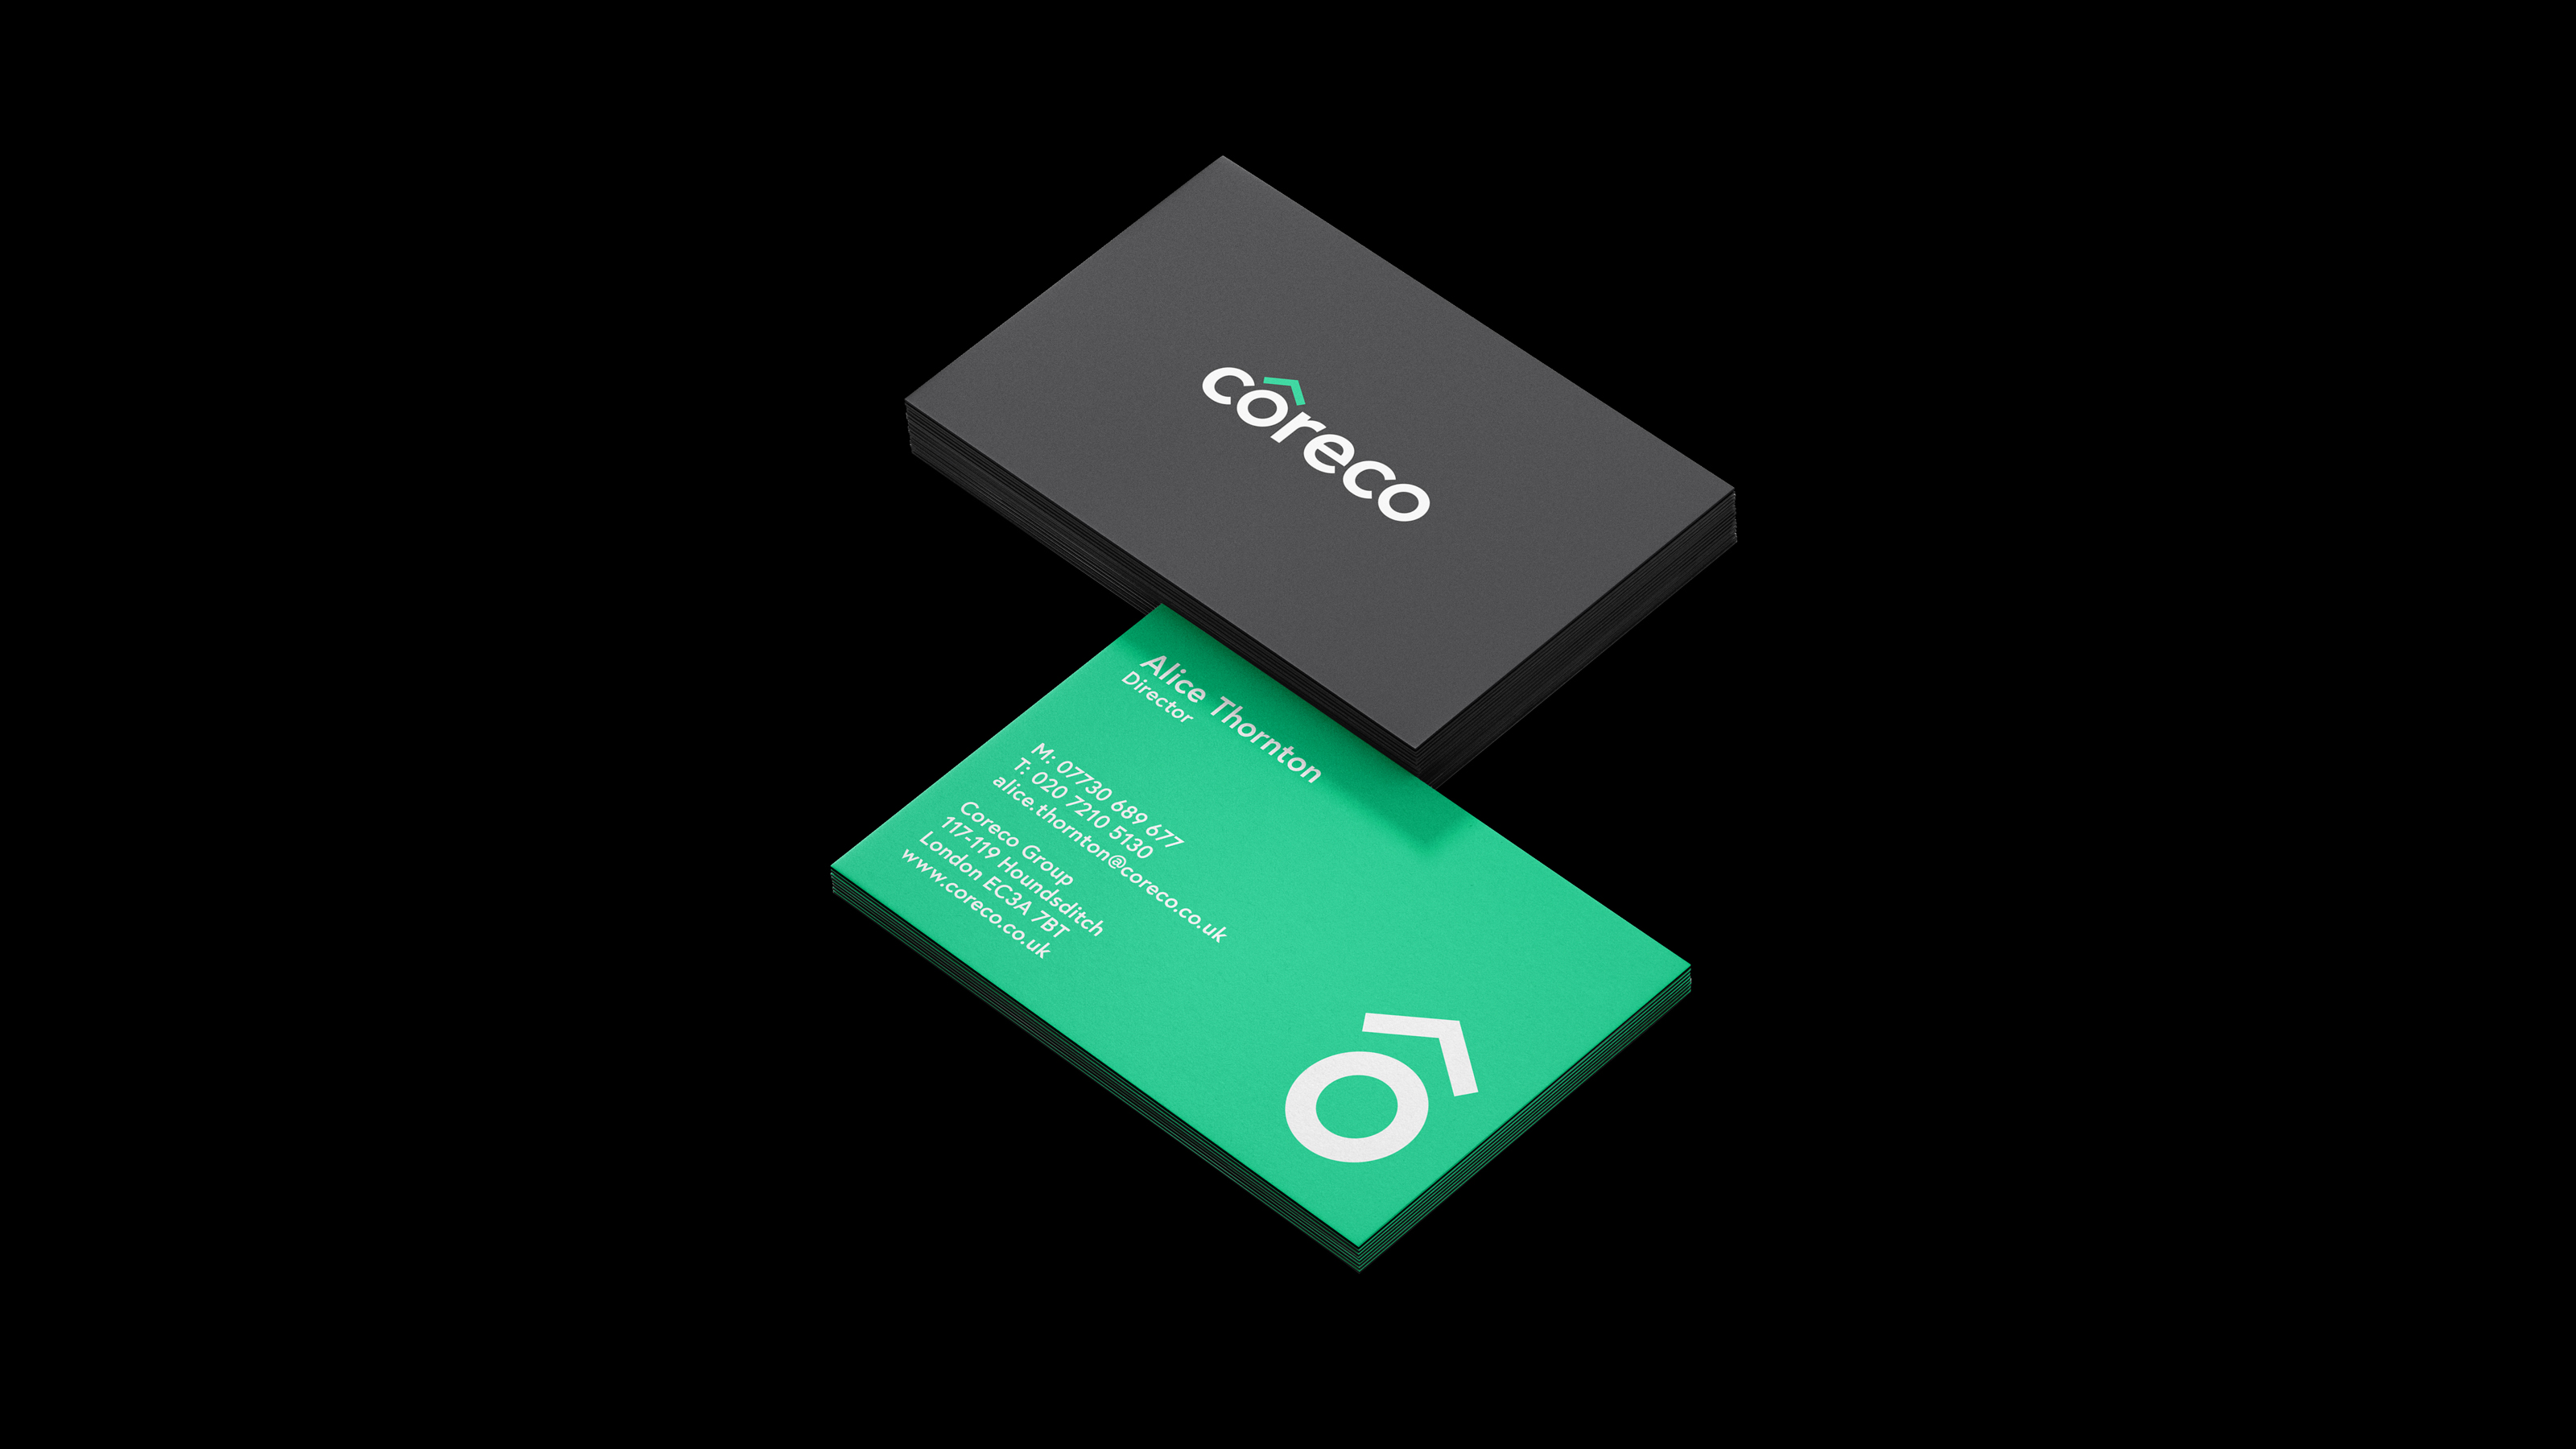 Brand business card design Coreco